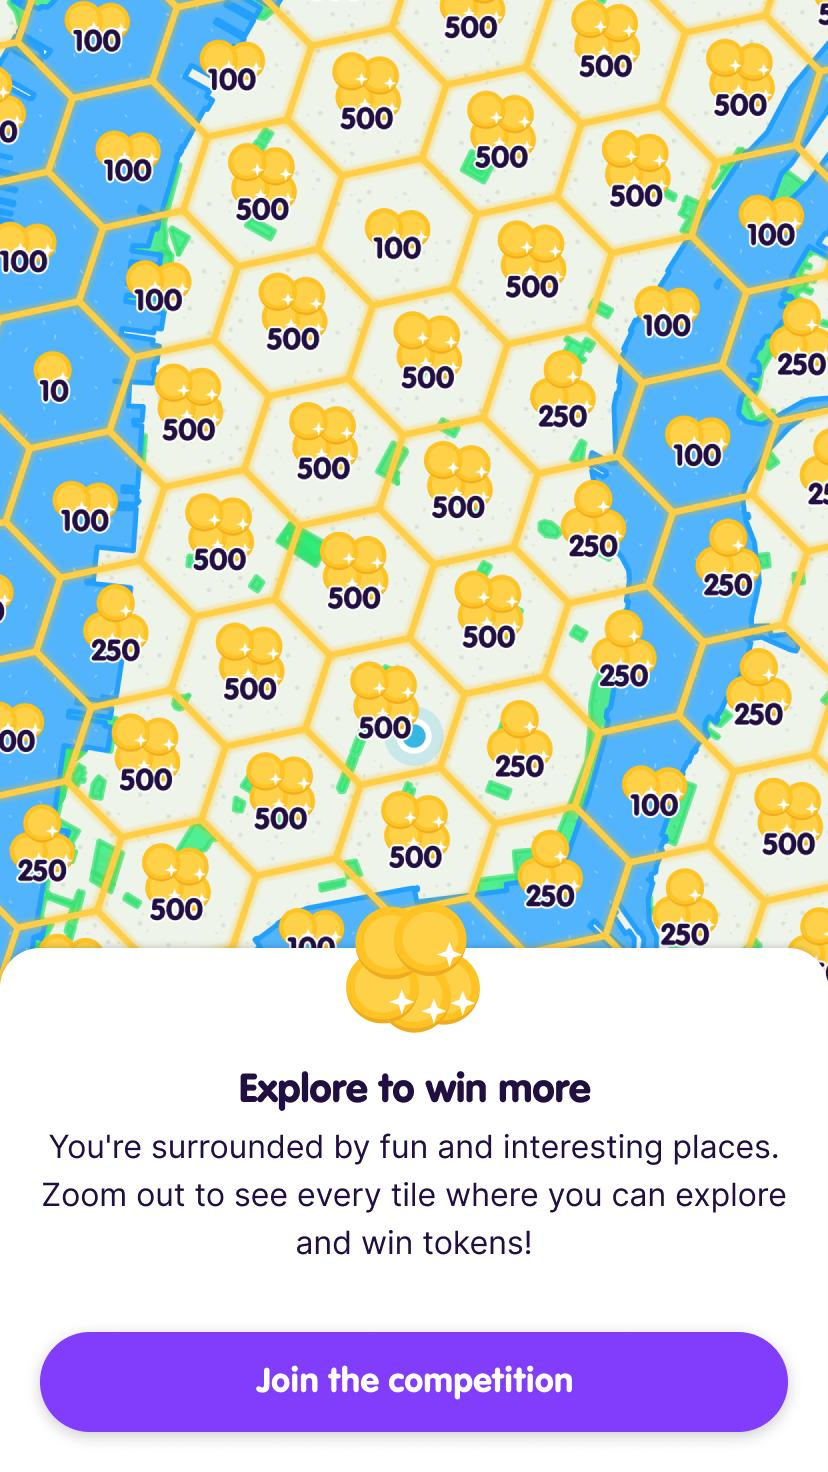 Screenshot from the app intro with a zoomed out map to show the surrounding tiles and available reward amounts. There's a button prompting the user to Join the competition.